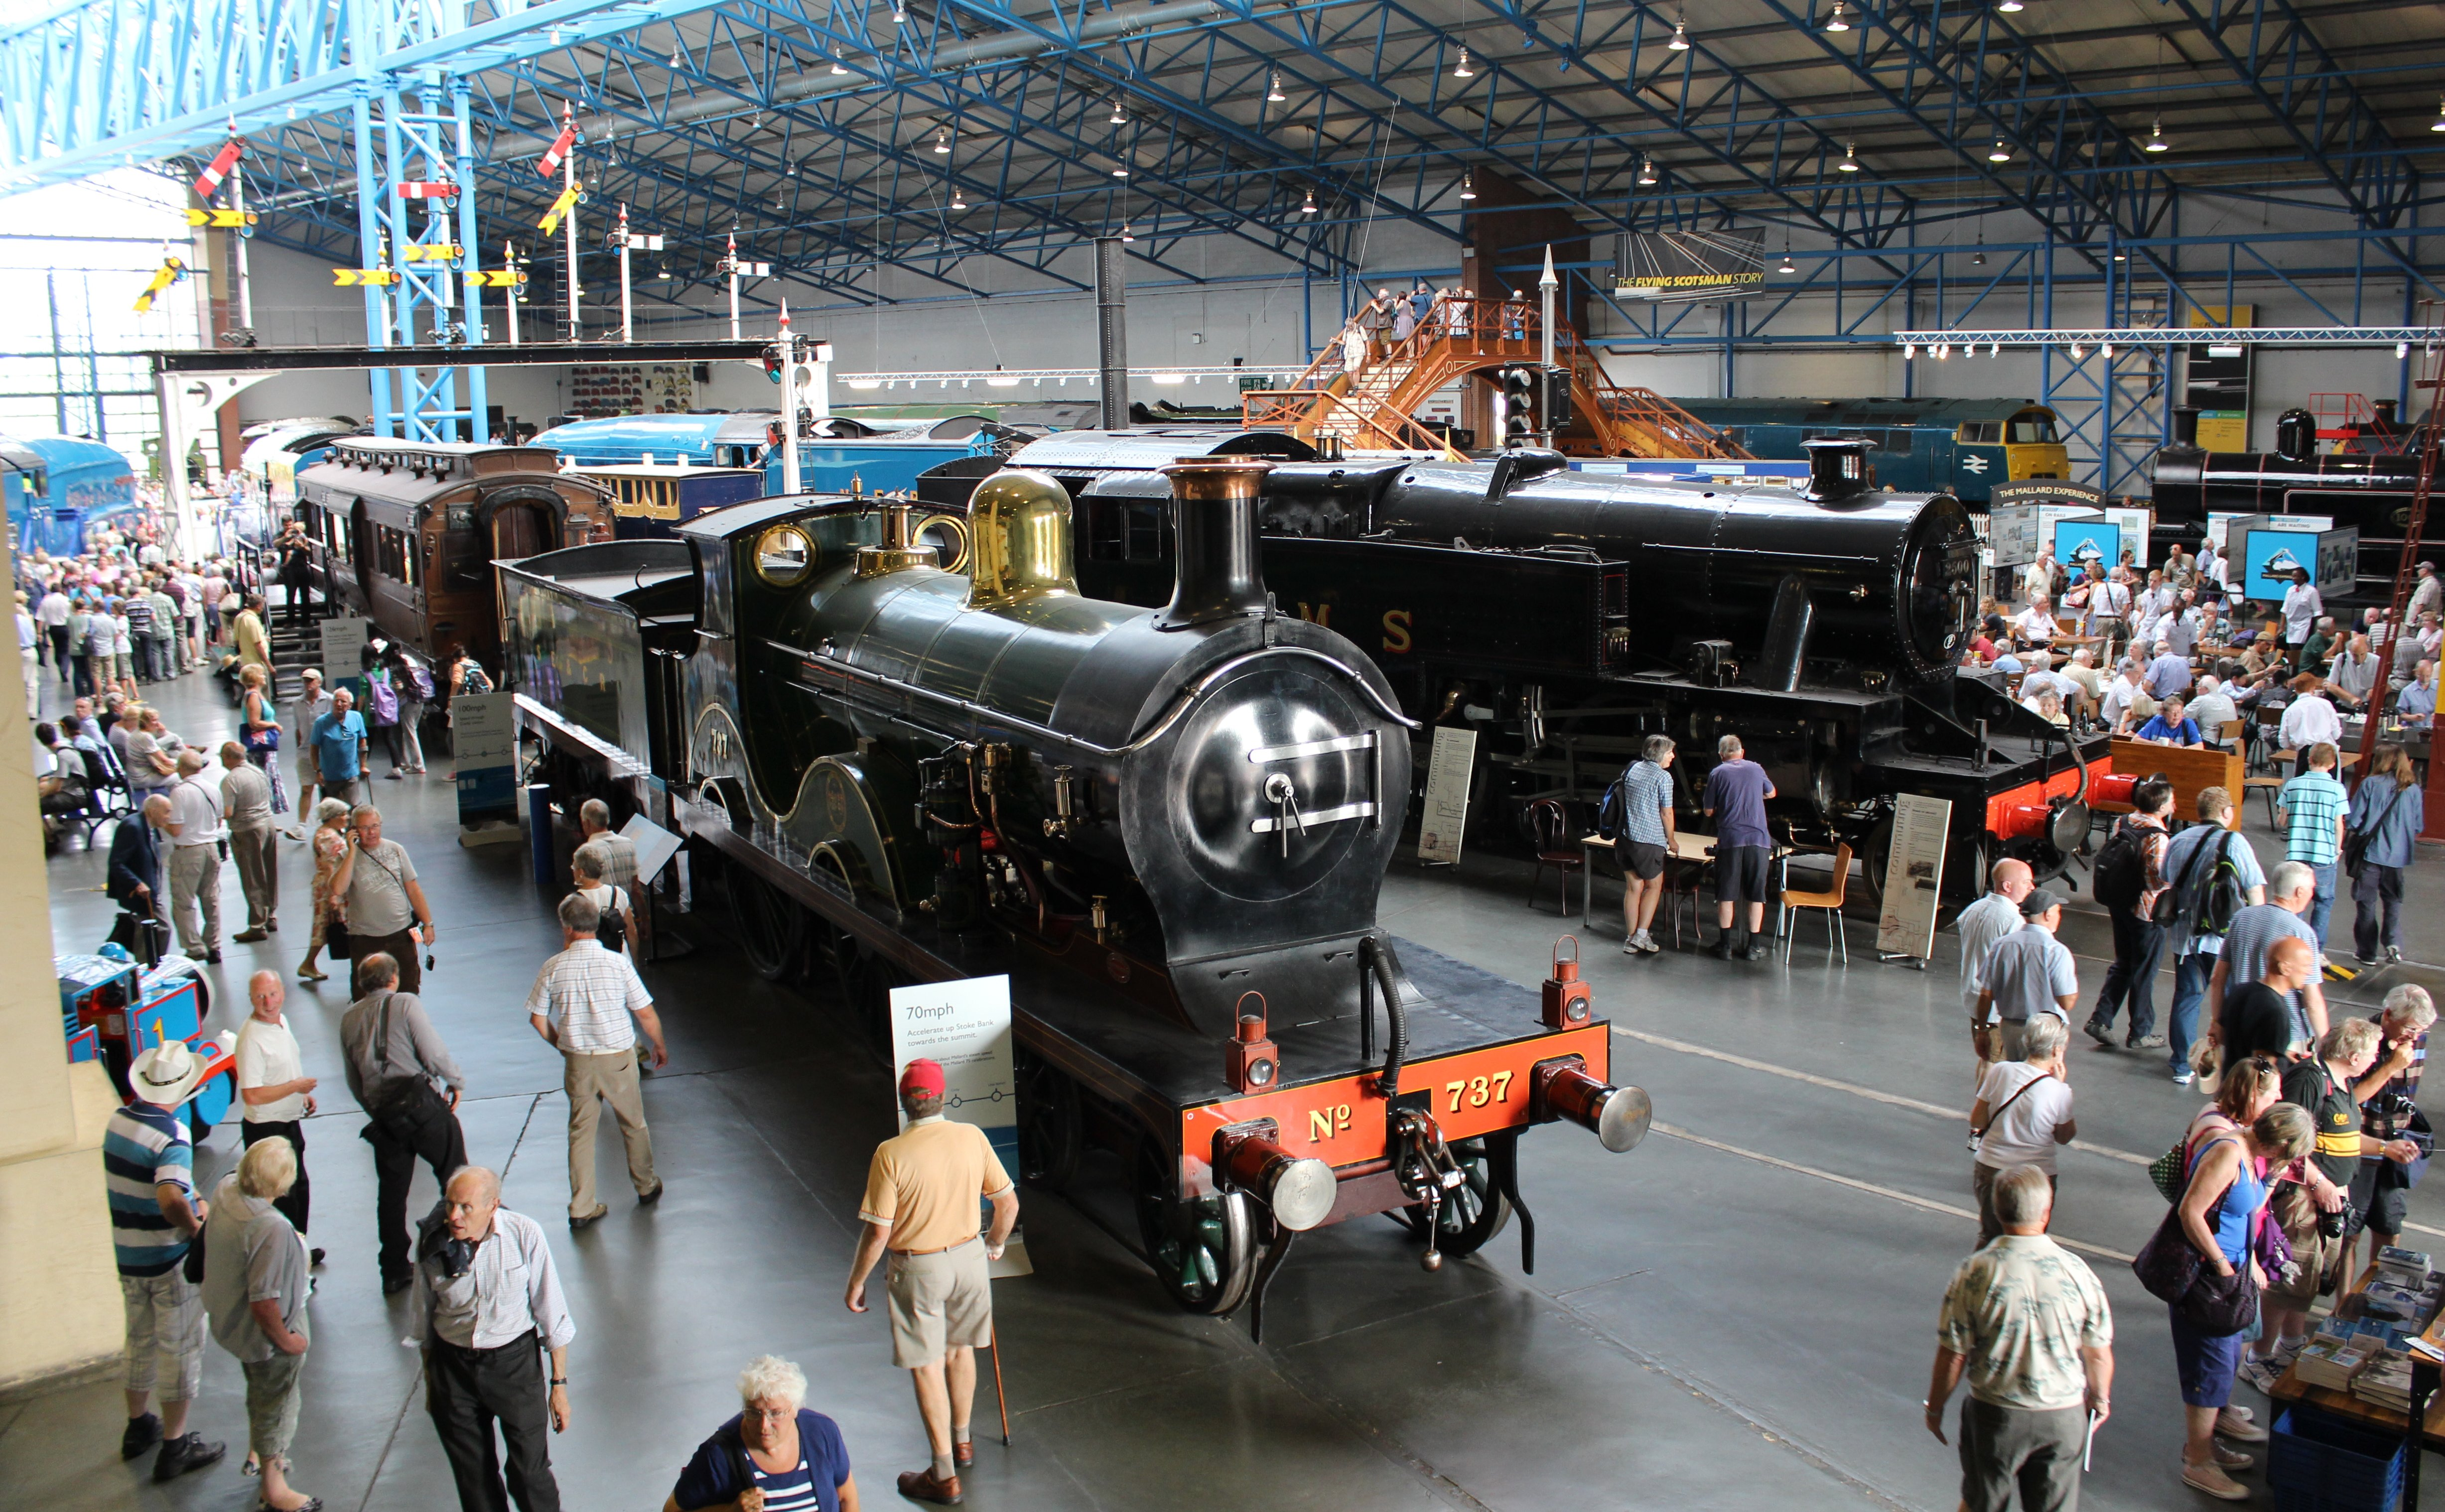 National Railway Museum - 50 mins